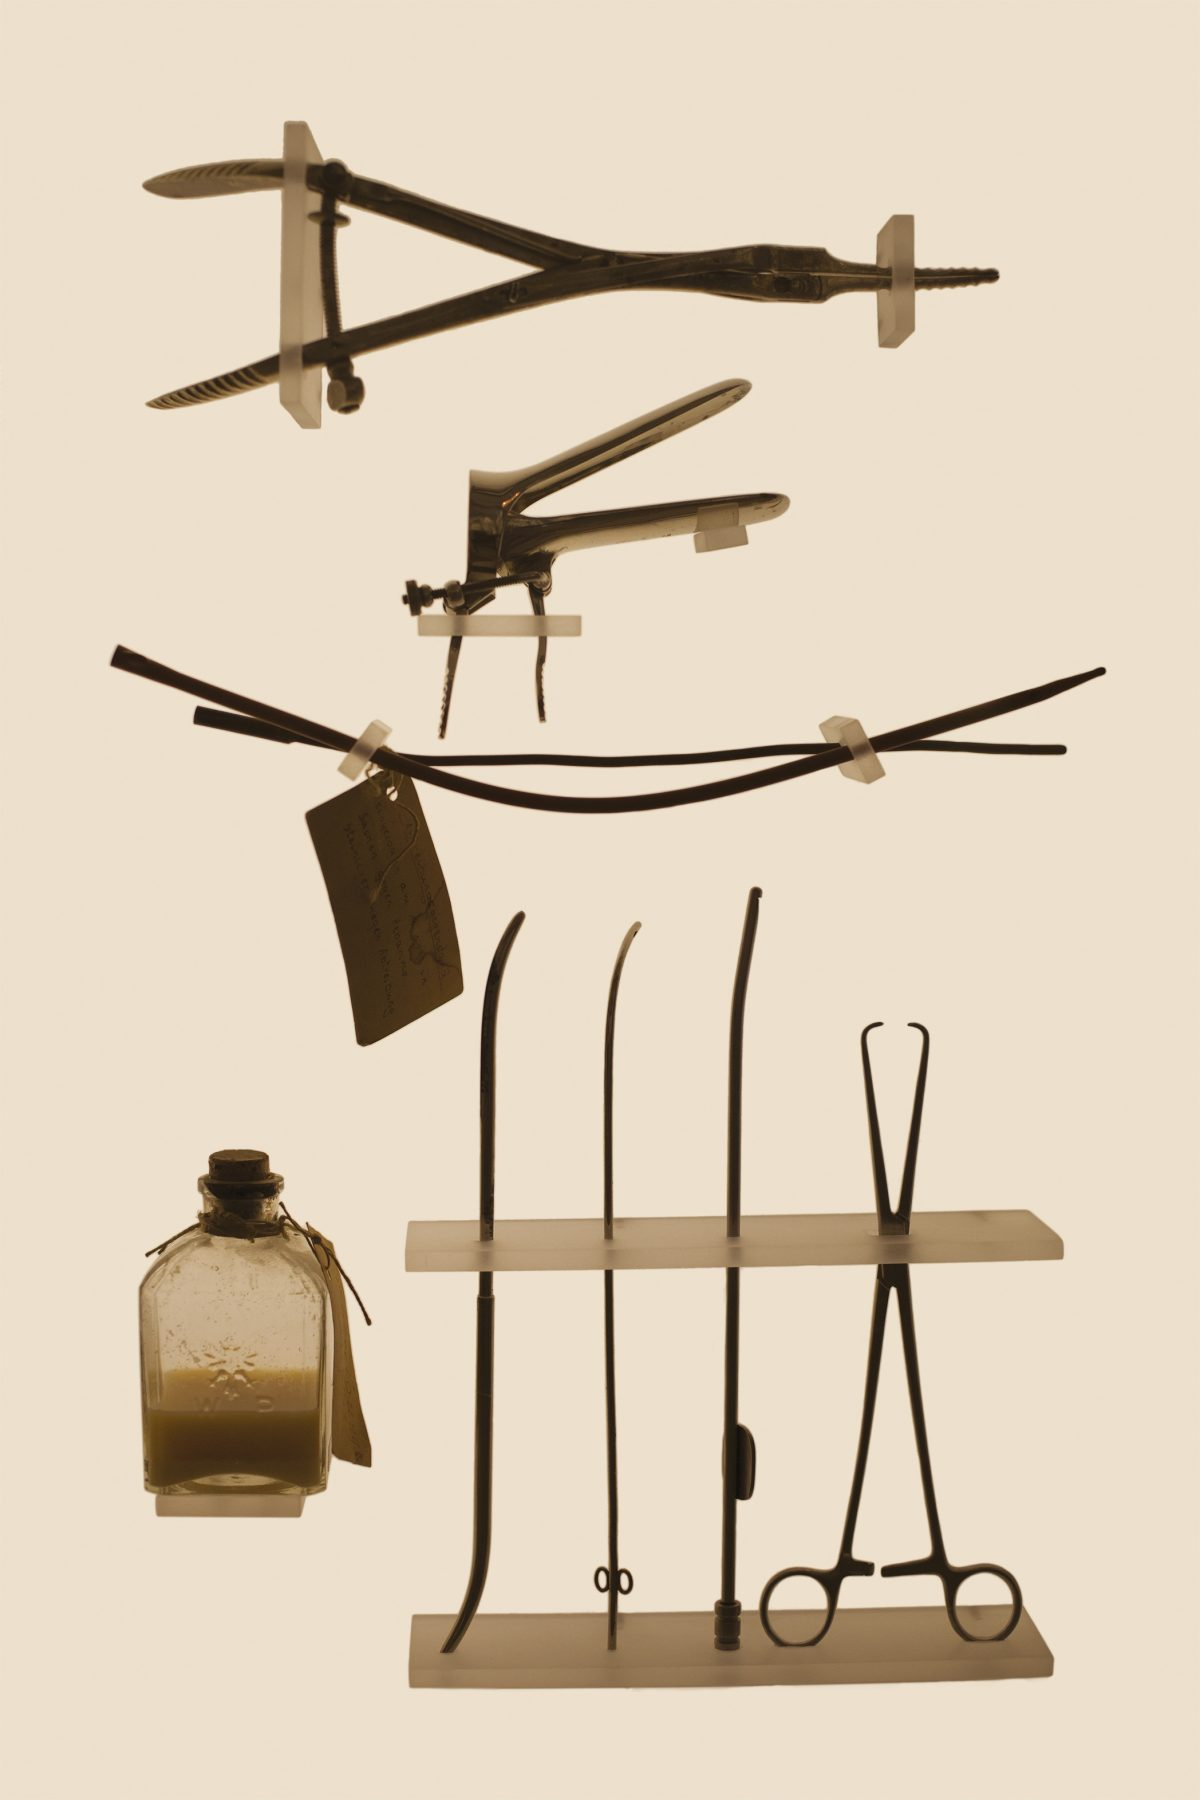 Des outils d'avortement à usage domestique. © Laia Abril / Museum of Conraception and Abortion, Vienne, Autriche, 2015